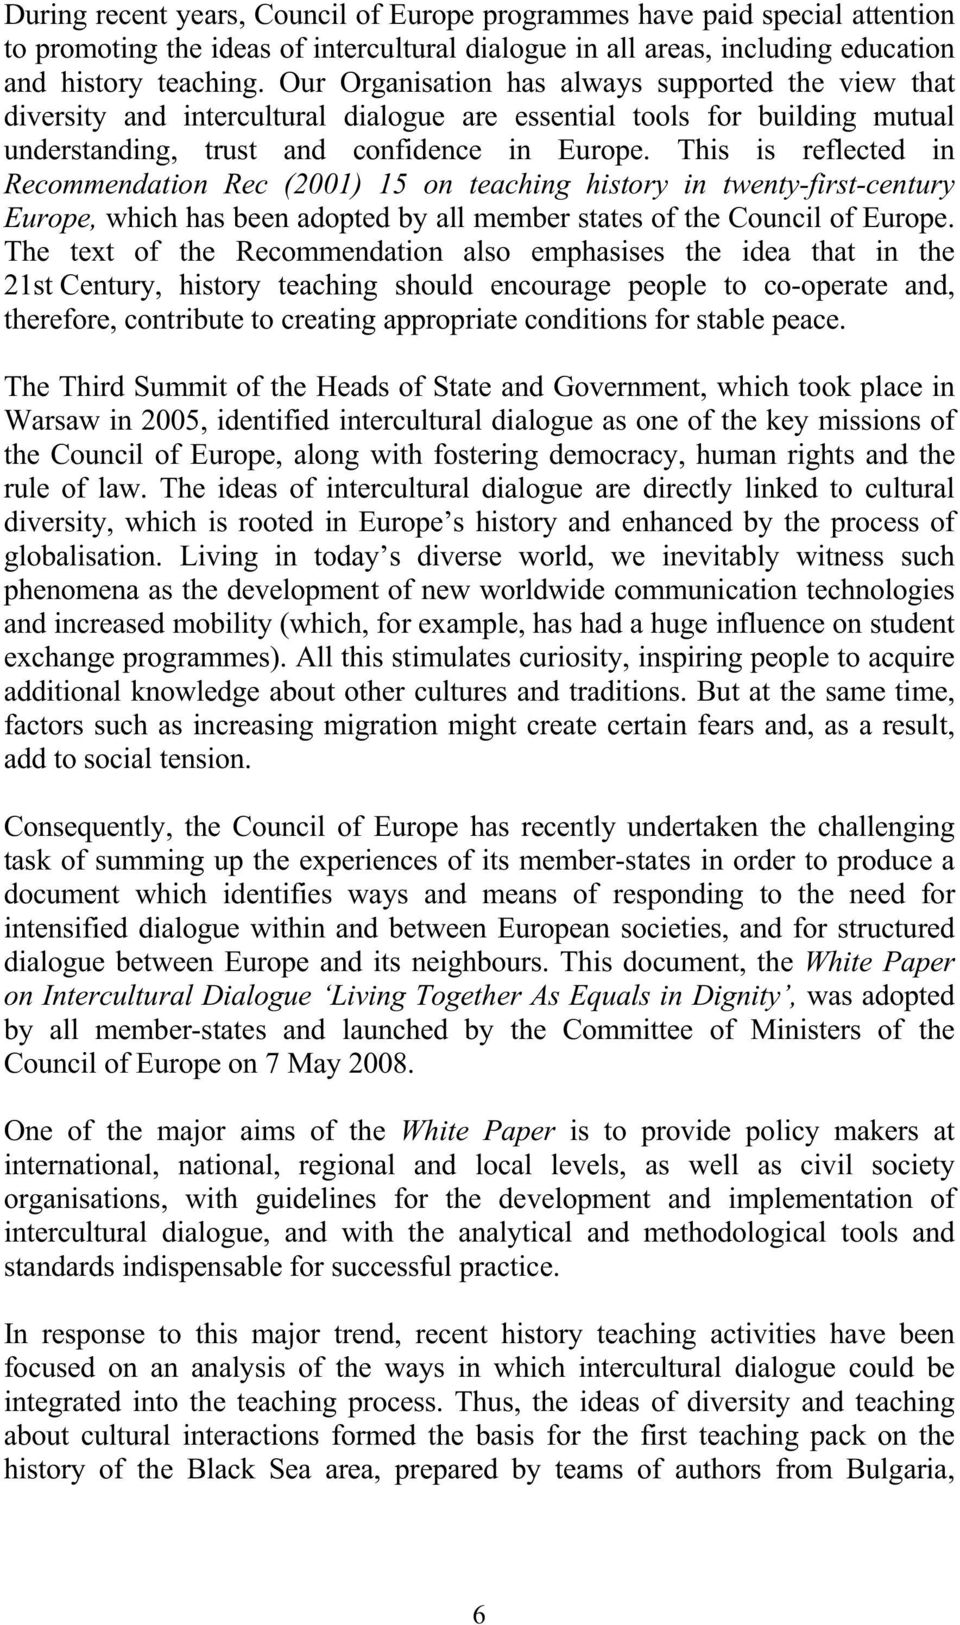 This is reflected in Recommendation Rec (2001) 15 on teaching history in twenty-first-century Europe, which has been adopted by all member states of the Council of Europe.